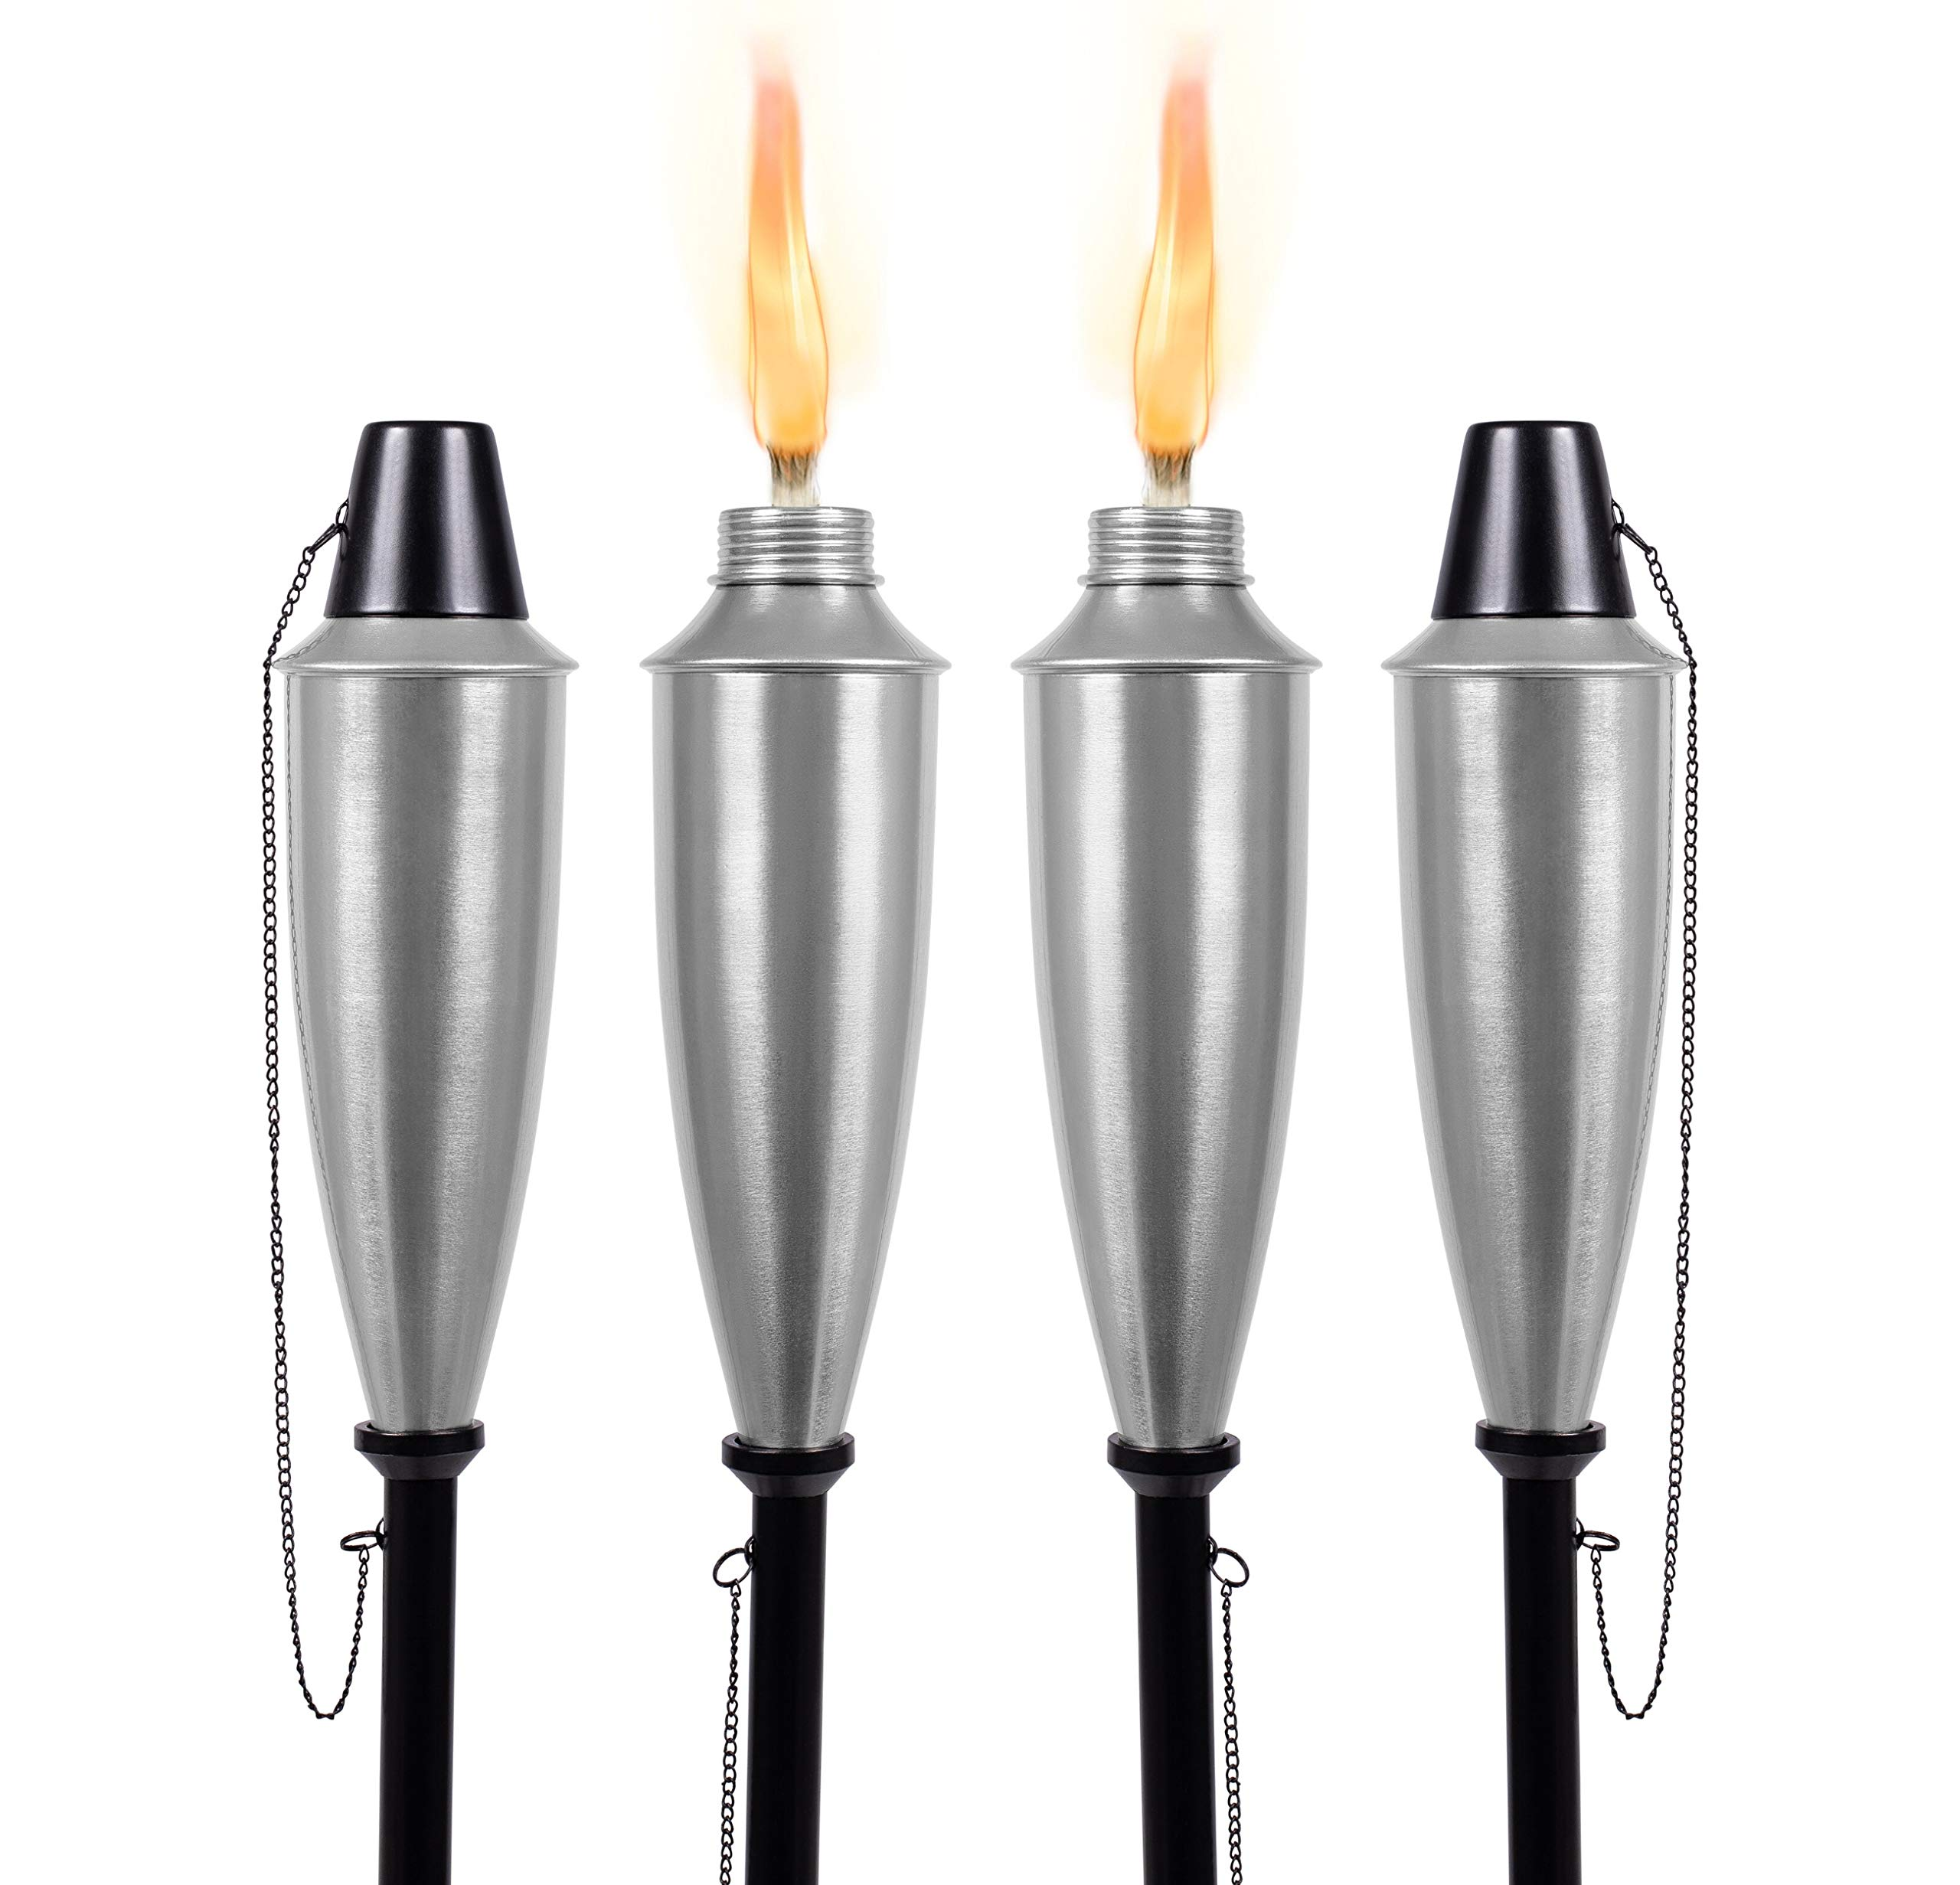 BIRDROCK HOME 4 Pack Round Outdoor Torches - Satin Silver - Flame Light Torch - Backyard Garden Patio Lighting - Metal Lamp - Decorative Urban Lantern